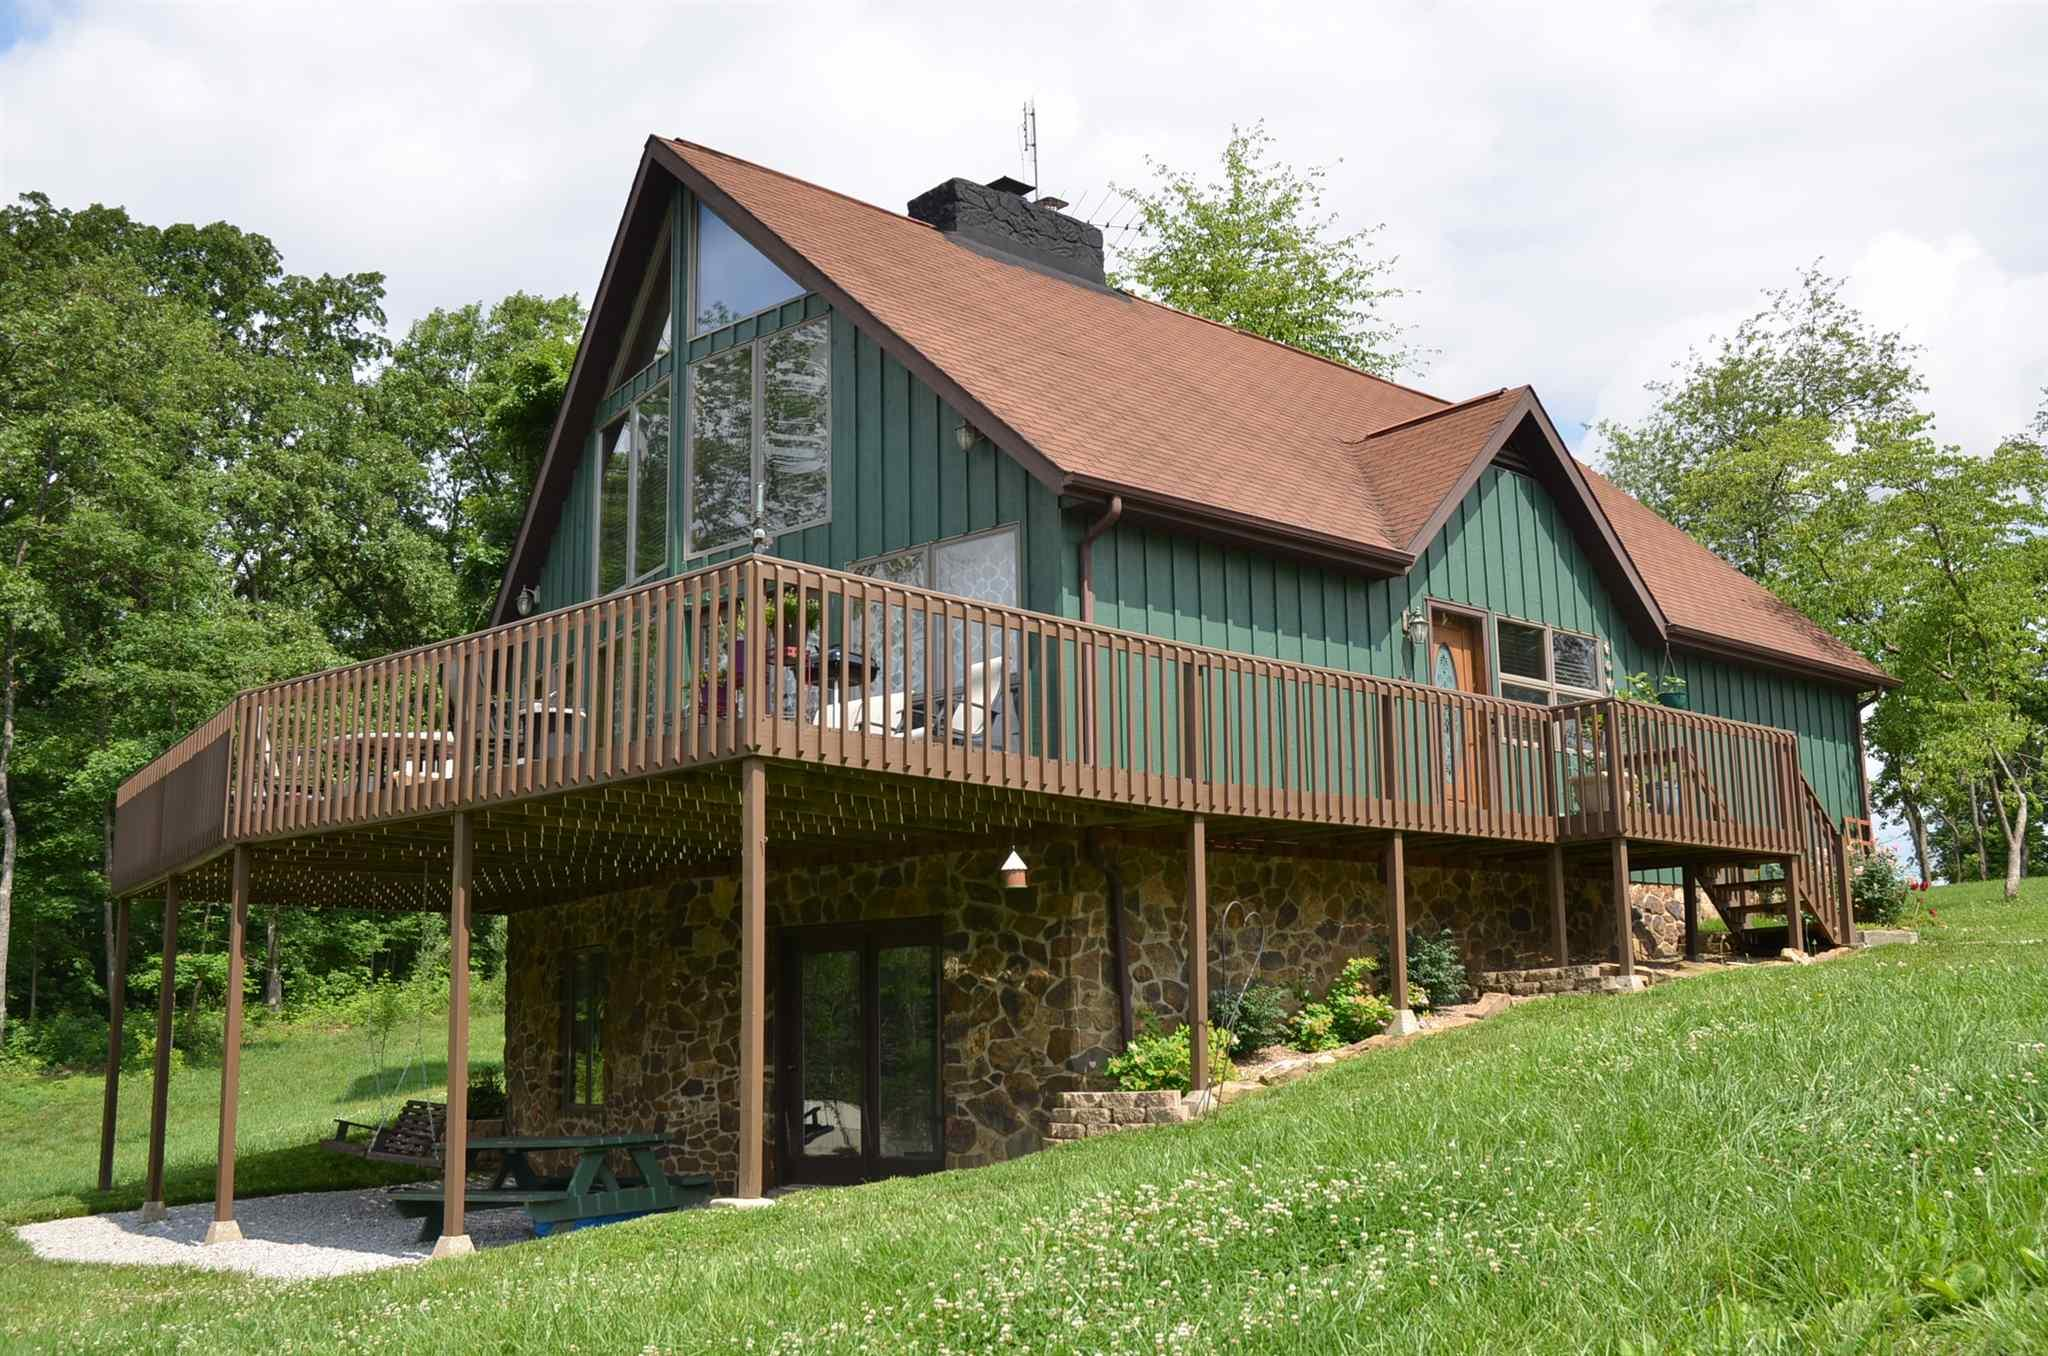 PICTURESQUE & PRIVATE...a world of privacy can be yours!  This three bedroom two bath home is tucked away on over five acres of pastoral splendor at the end of a quiet no-through lane. Amenities include a cheerful country kitchen with ample cabinetry which is open to the dining and living room areas centered with a fieldstone floor-to-ceiling fireplace, a magnificent window wall that appears to bring the great outdoors in, a large family-sized deck for a bird's eye view of your own private lake, a full finished walk-out basement, and an over-sized two-car detached garage...this is a rare offering that is at peace with nature so reward yourself with the home you deserve!